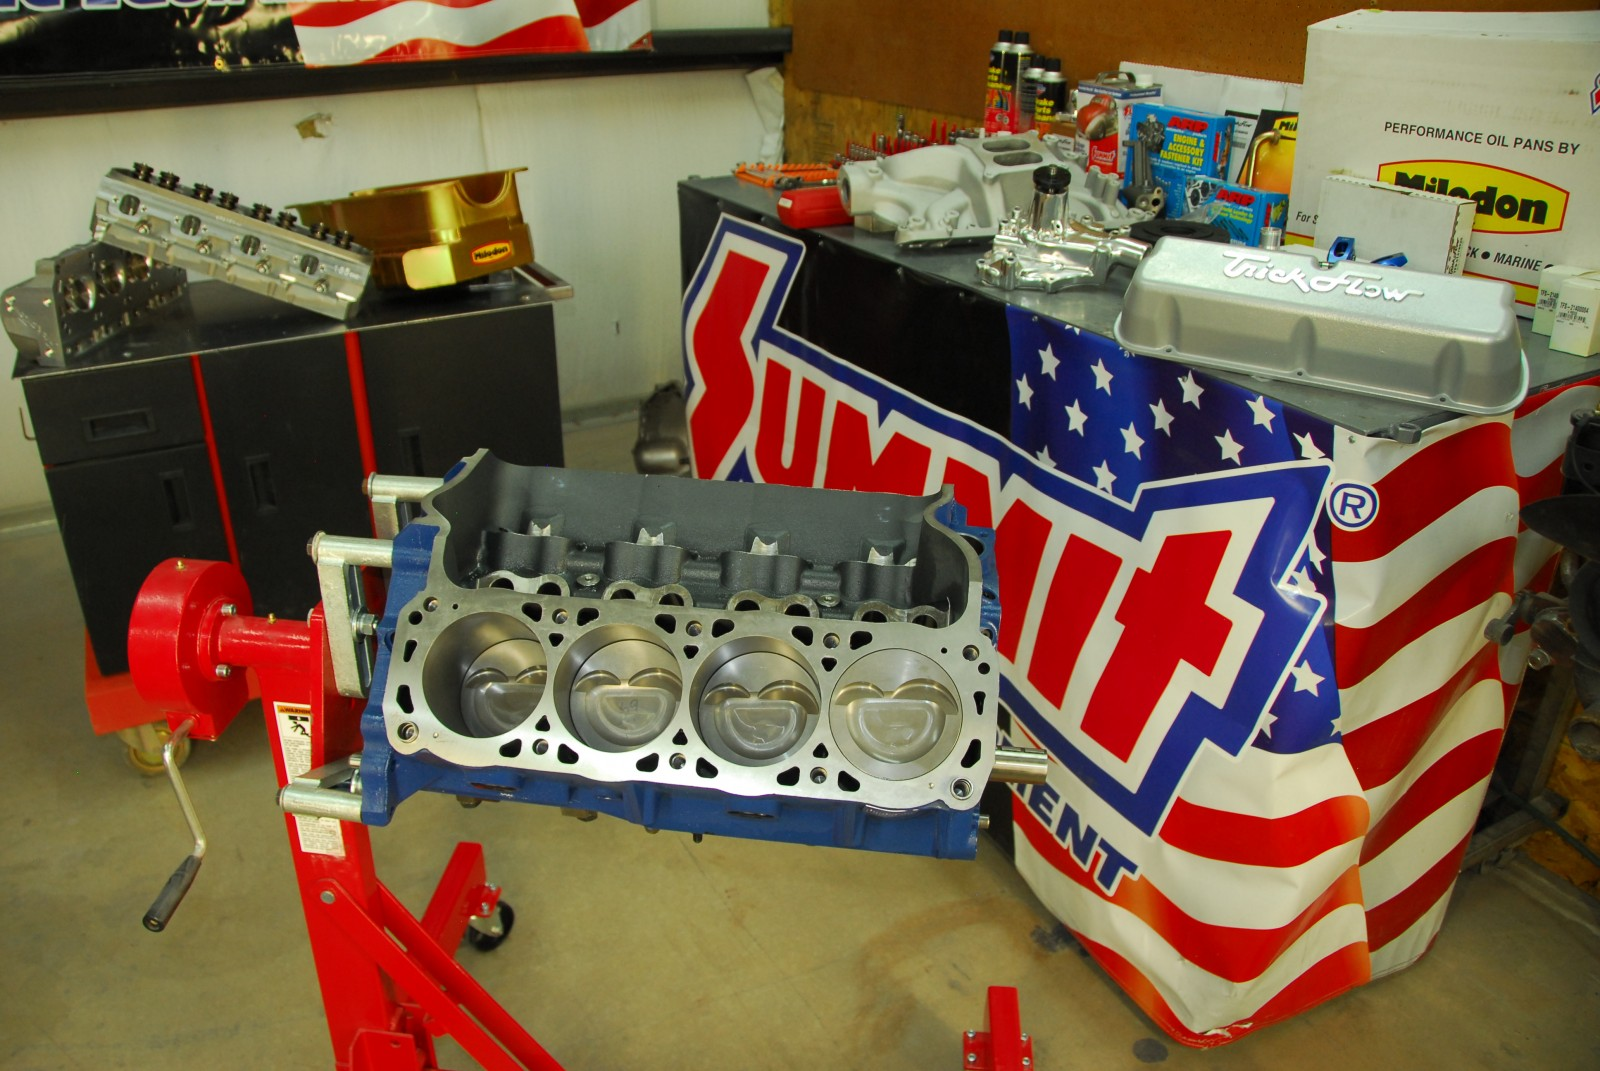 Factory Five/Summit Racing Mk4 Build (Part 3): Engine and Drivetrain